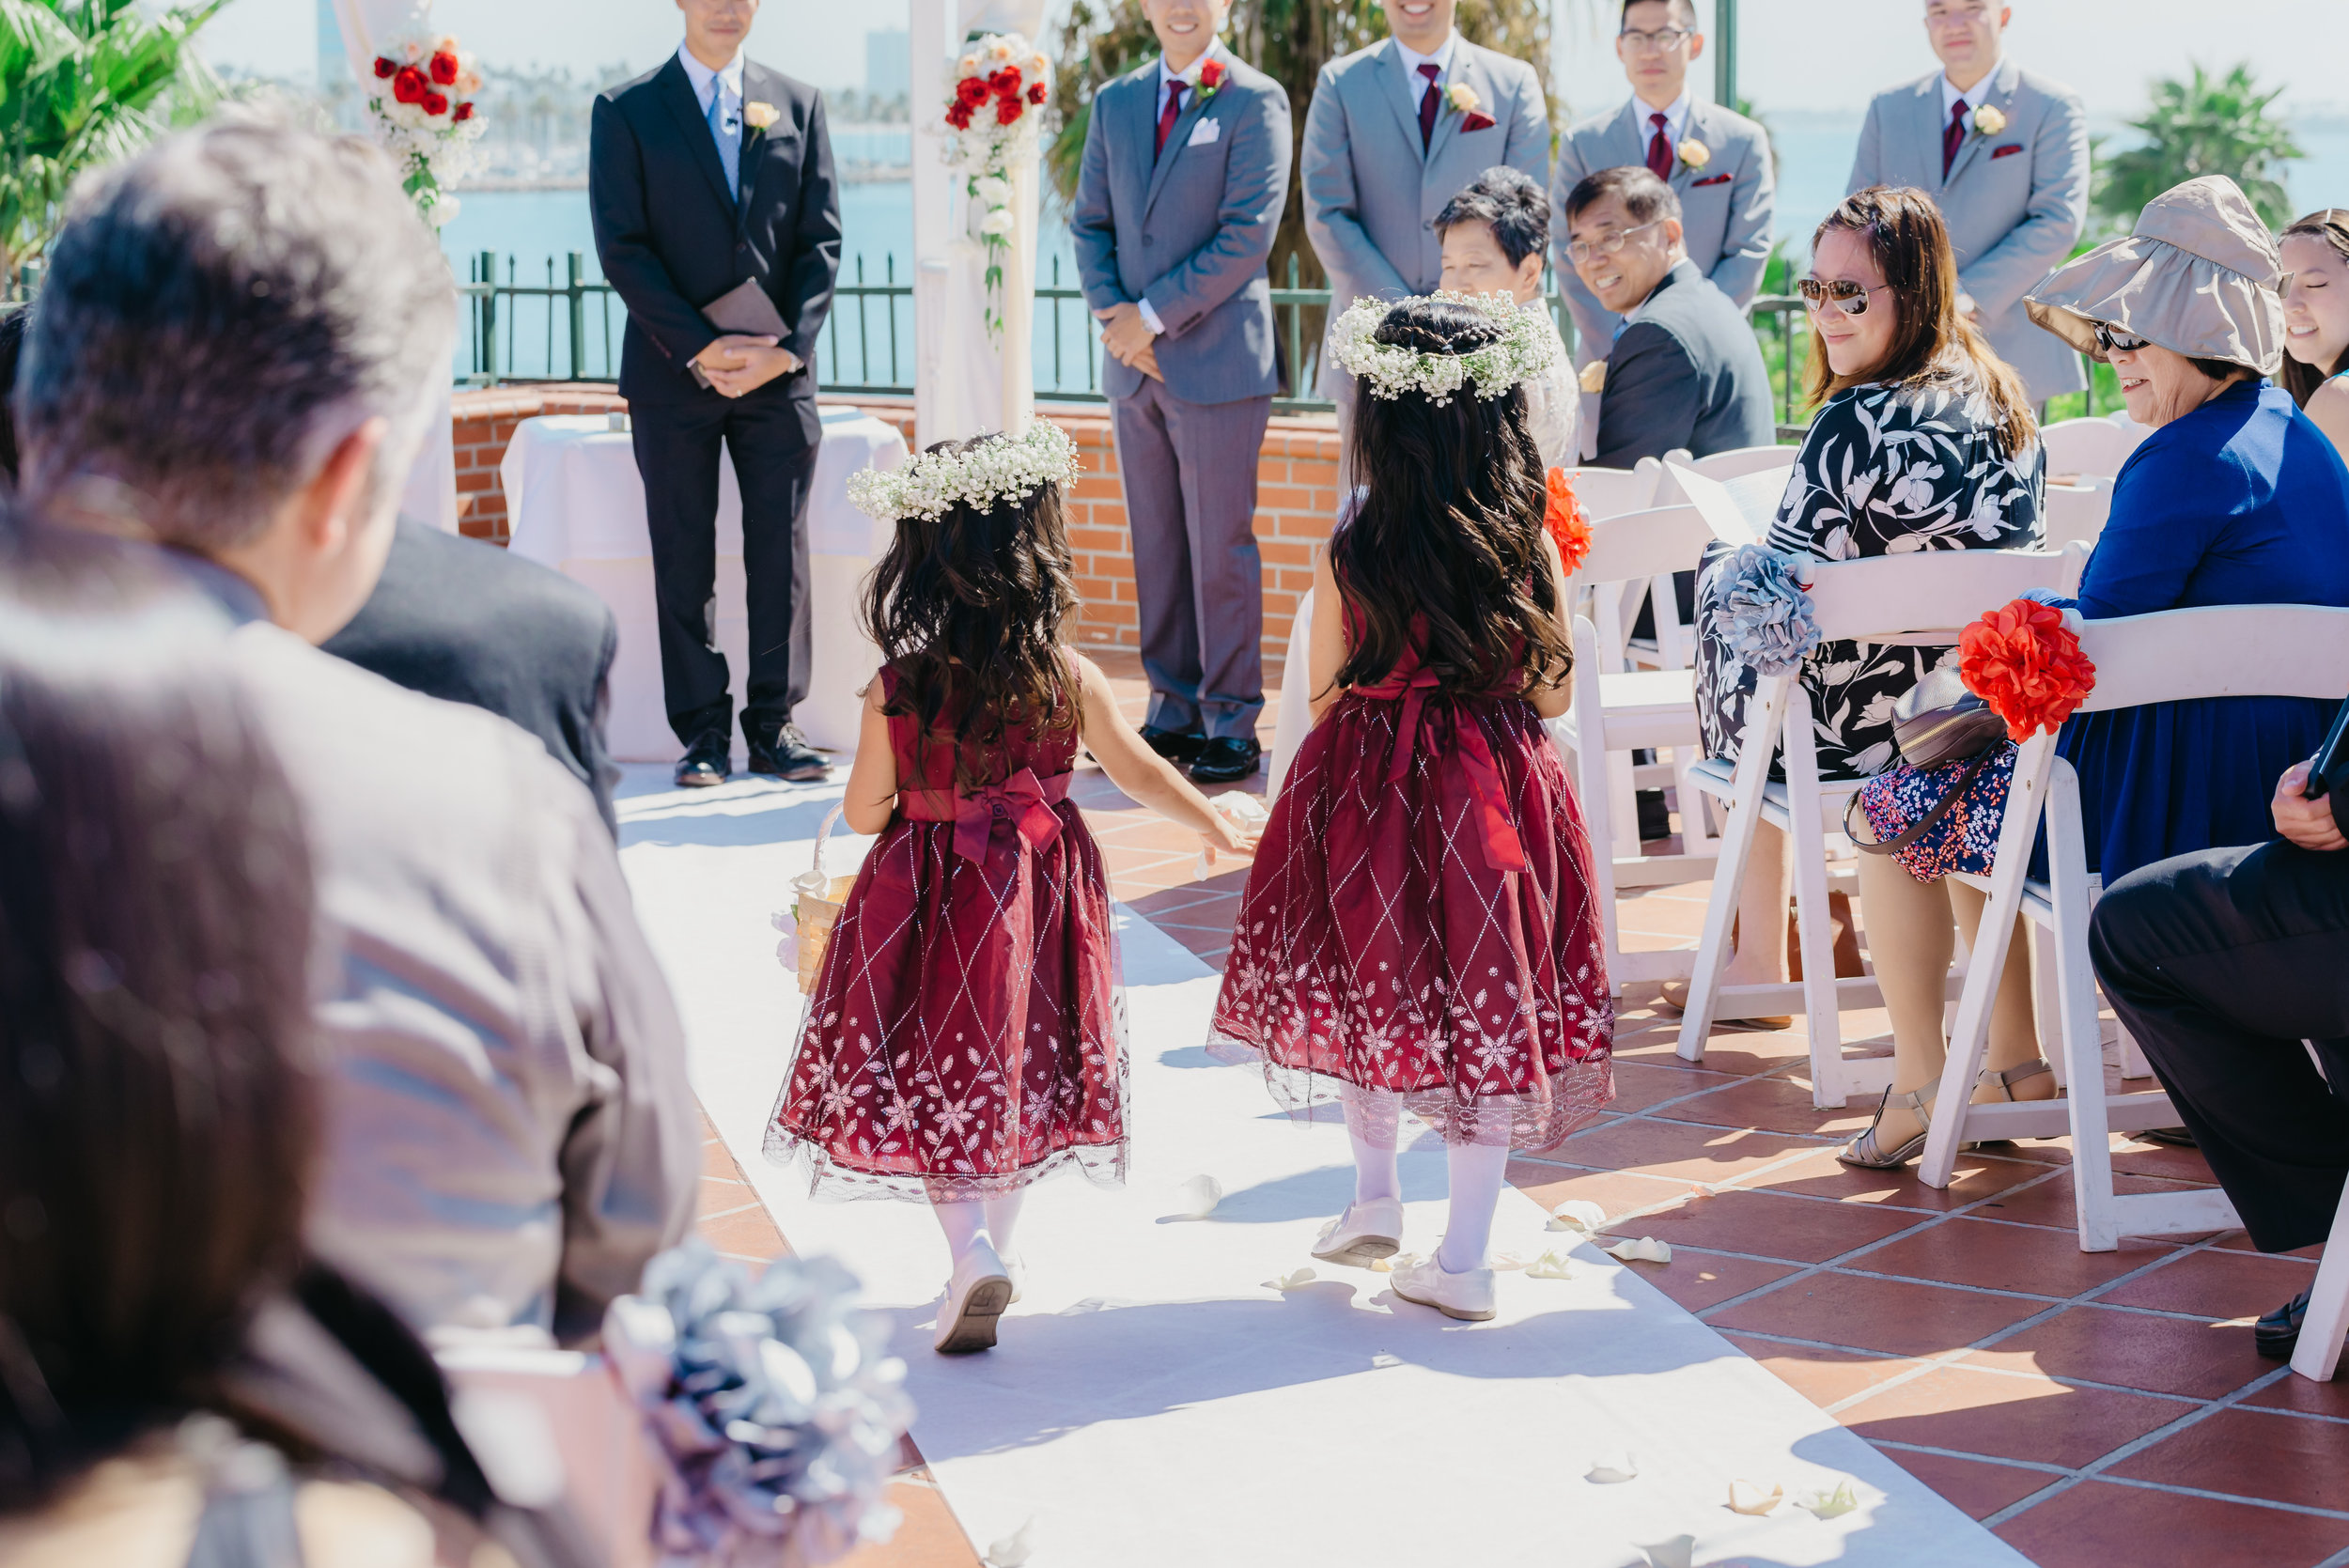 Two young sisters in red dresses and flower crowns throwing flowers as they walk down the aisle together as flower girls.